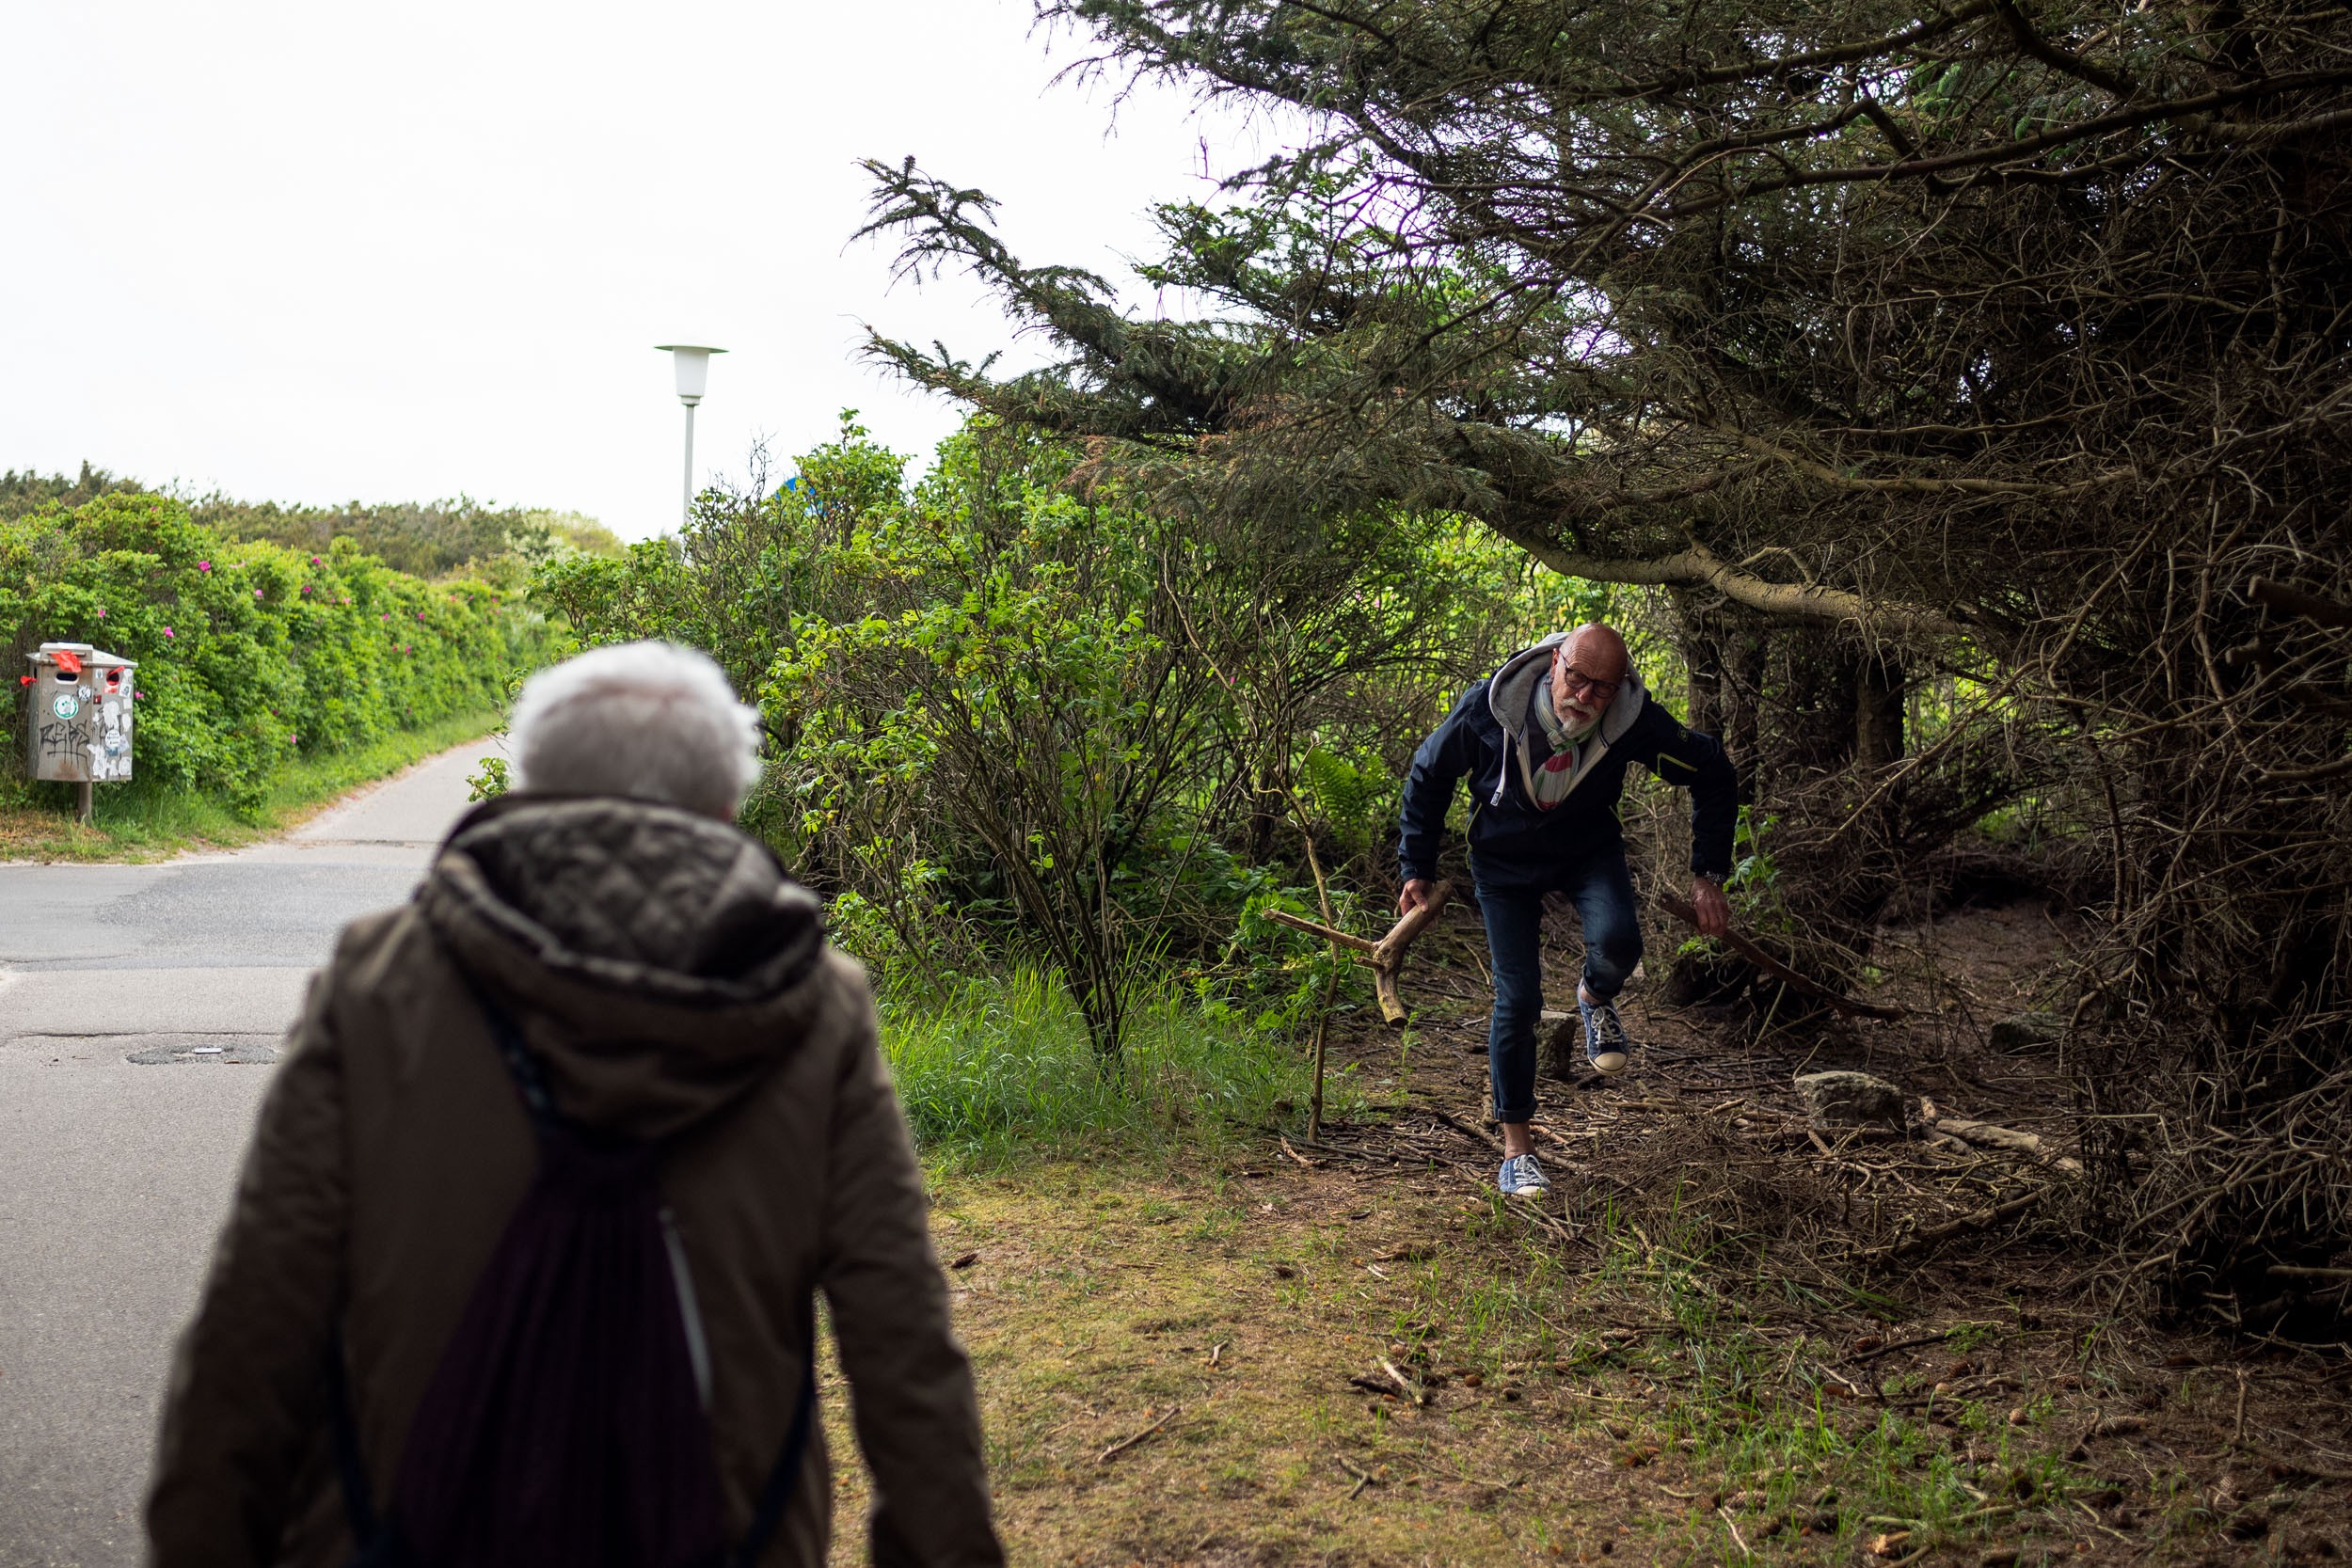 In the dunes between Westerland and Wenningstedt dad finds a tree branch and shows it to mom. Sylt, Germany, May 25, 2019.